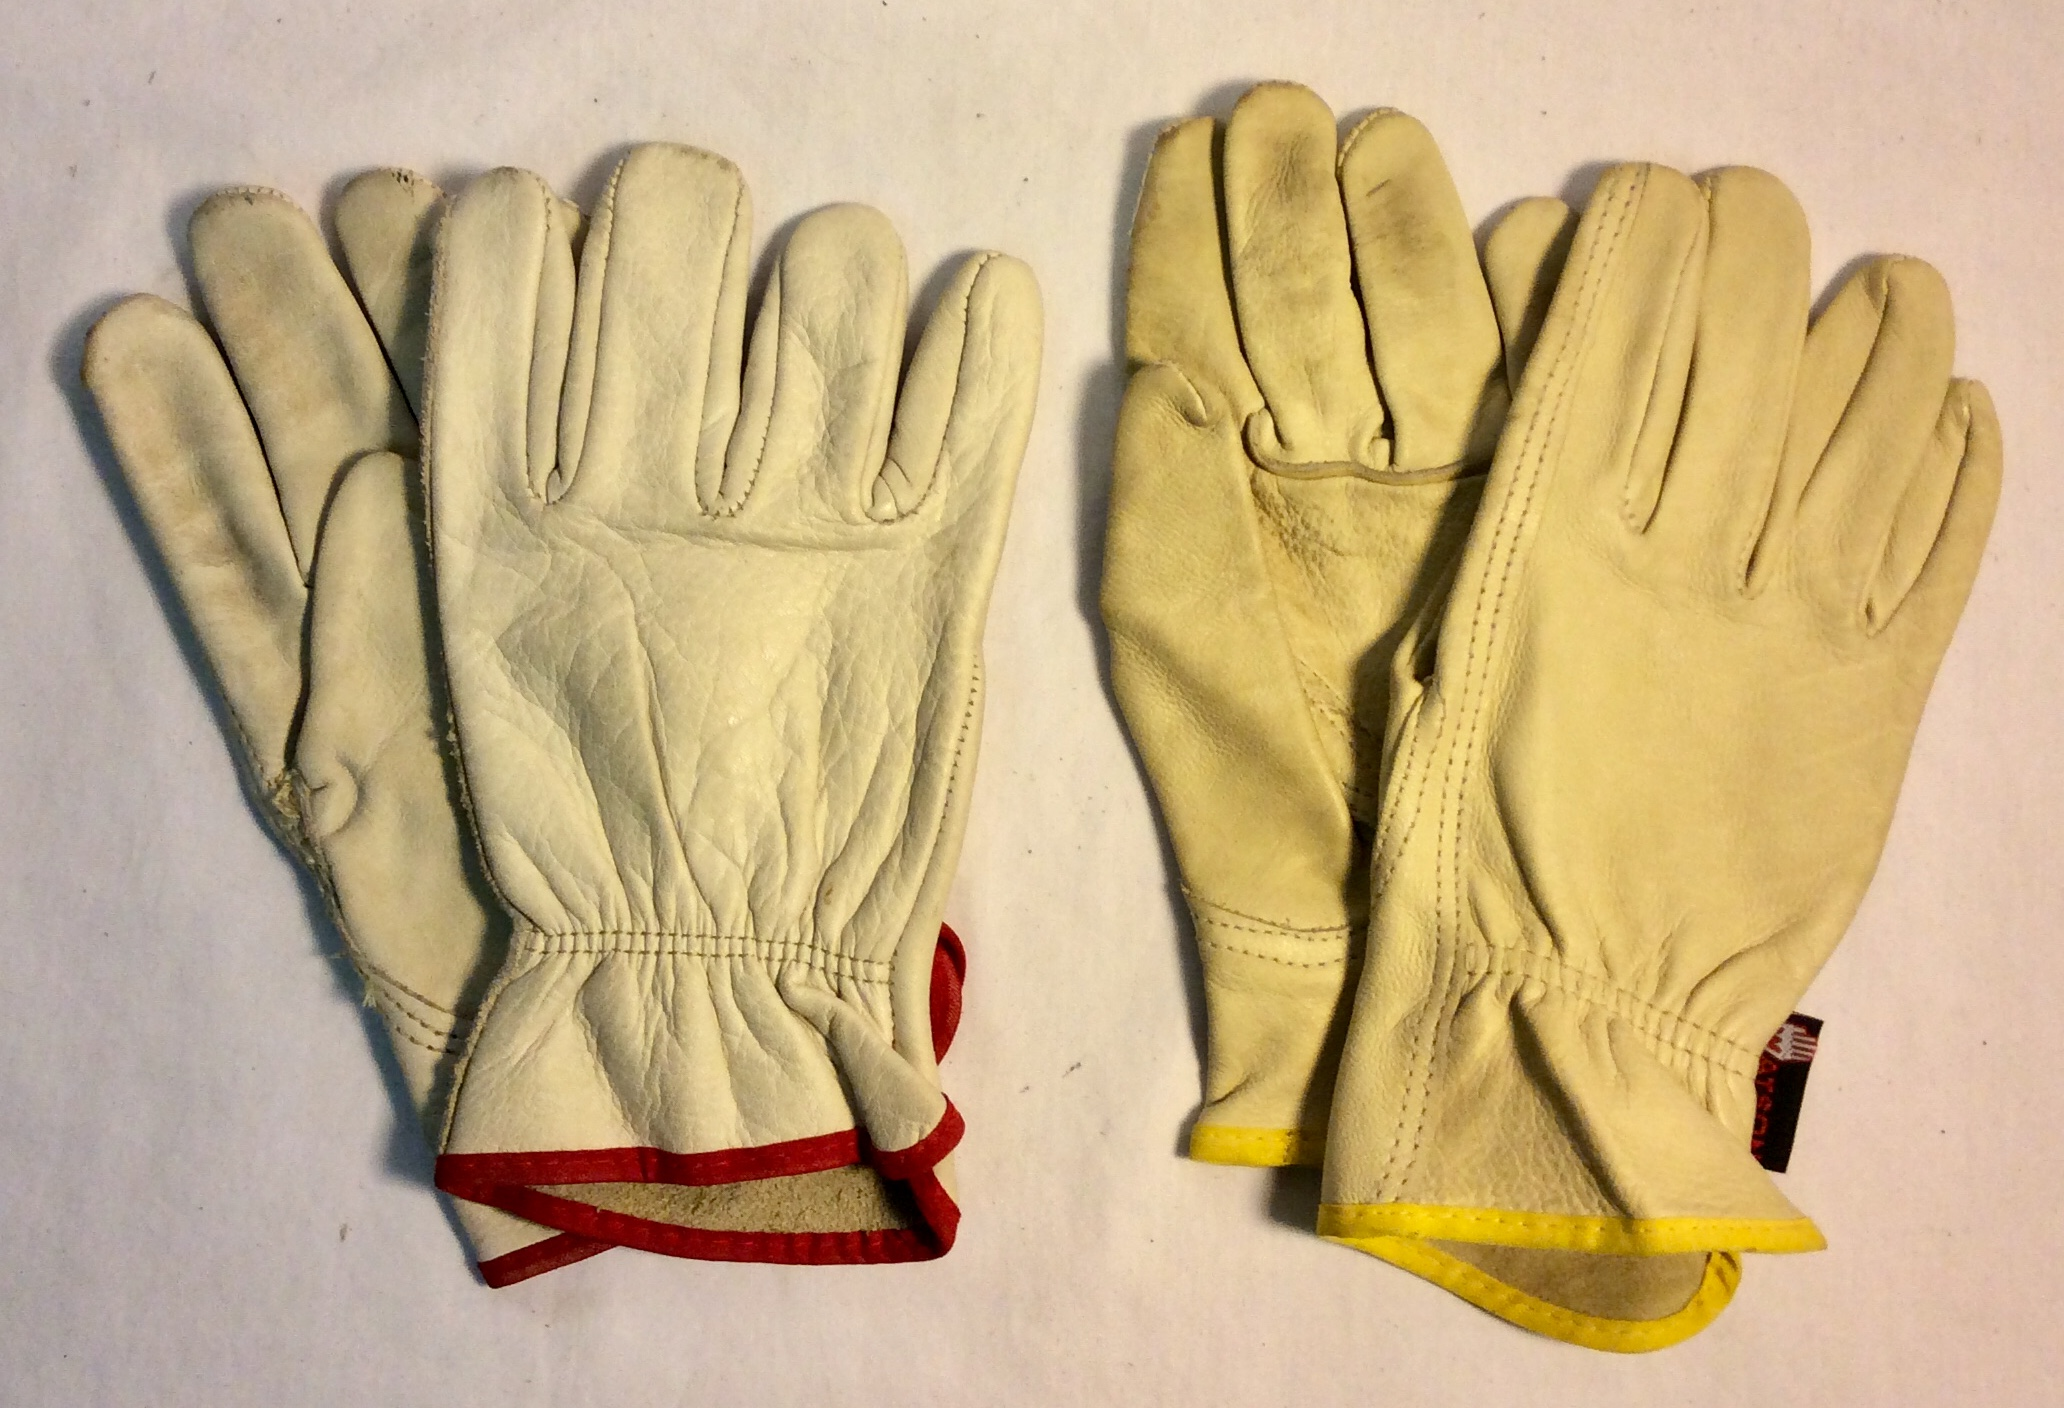 White soft leather gloves (WATSON) x1 pair with yellow lining; x1 pair with red lining